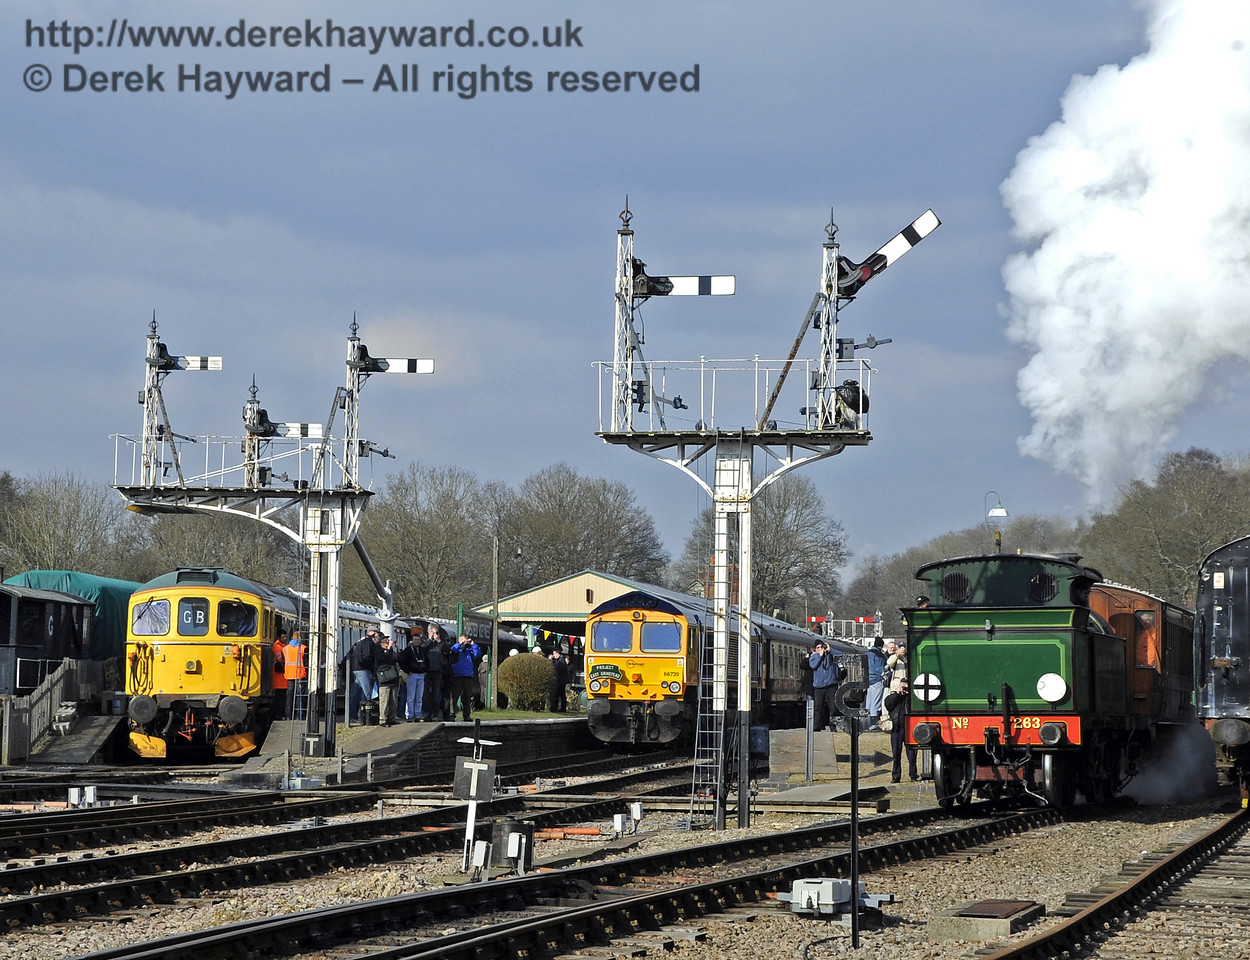 The departure of a steam hauled service interrupts the diesel gala at Horsted Keynes. 28.03.2013  6442